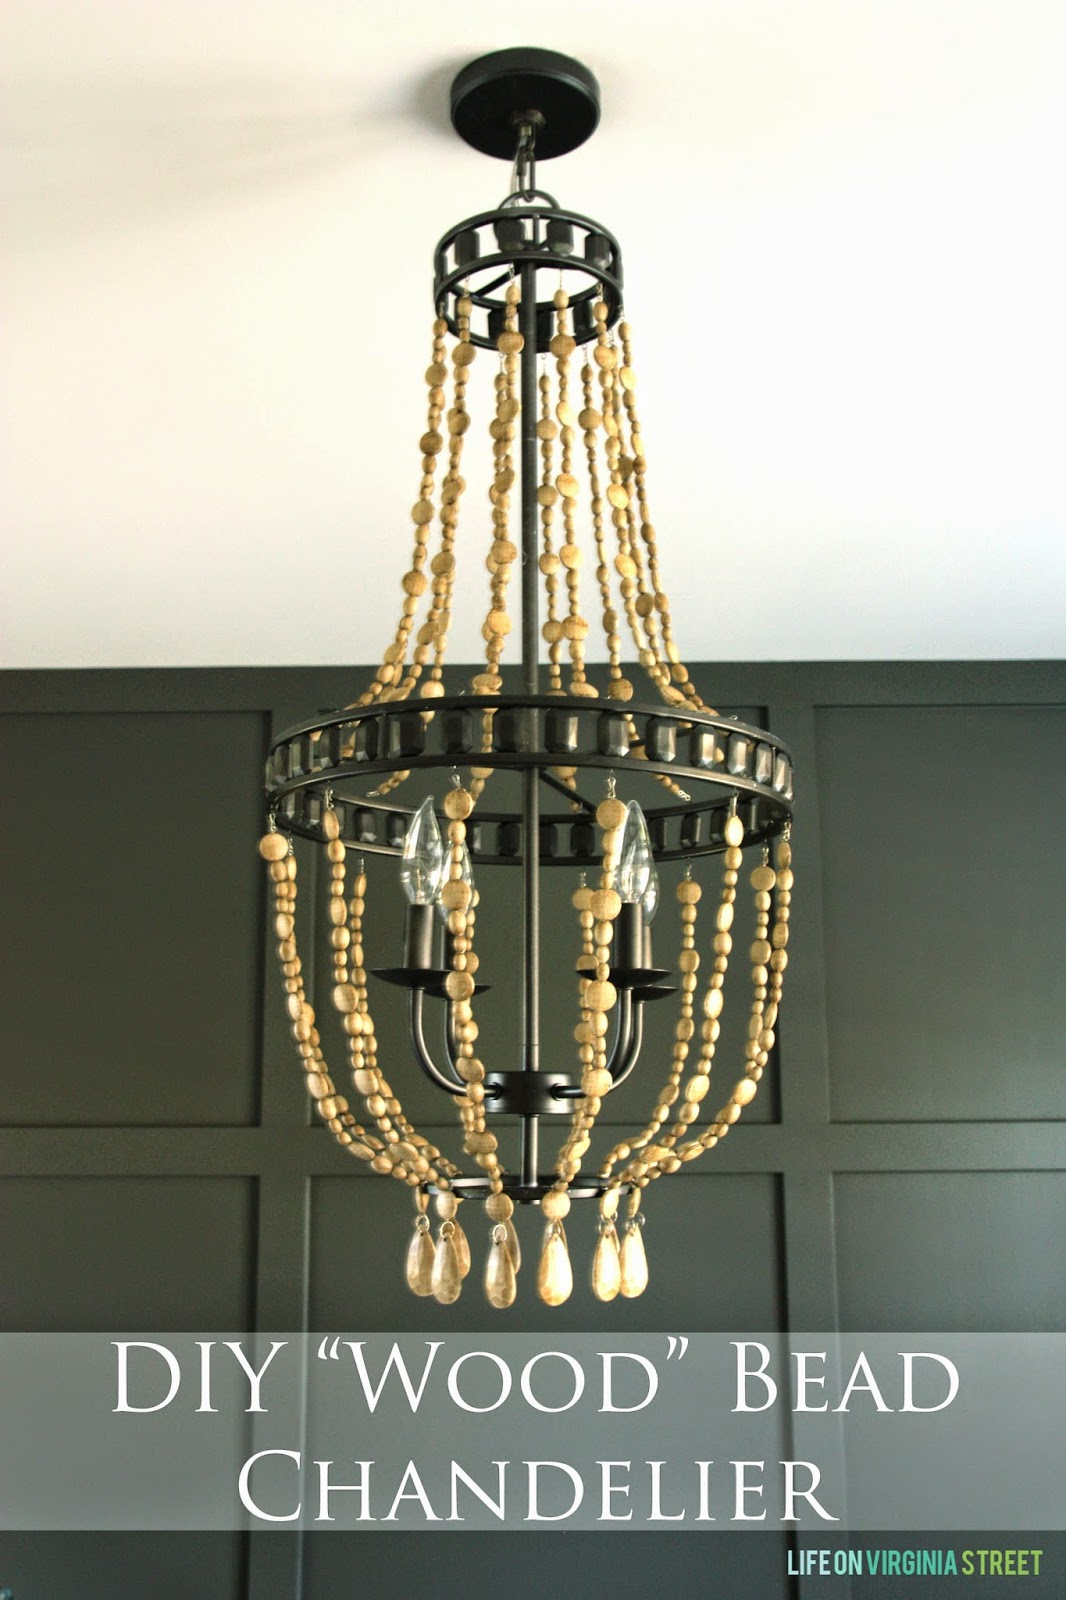 Home office makeover with diy wood bead chandelier remodelaholic so i schemed about how i could create the wood bead chandelier i dreamed of i knew the light fixture would be critical to the design of the room arubaitofo Gallery